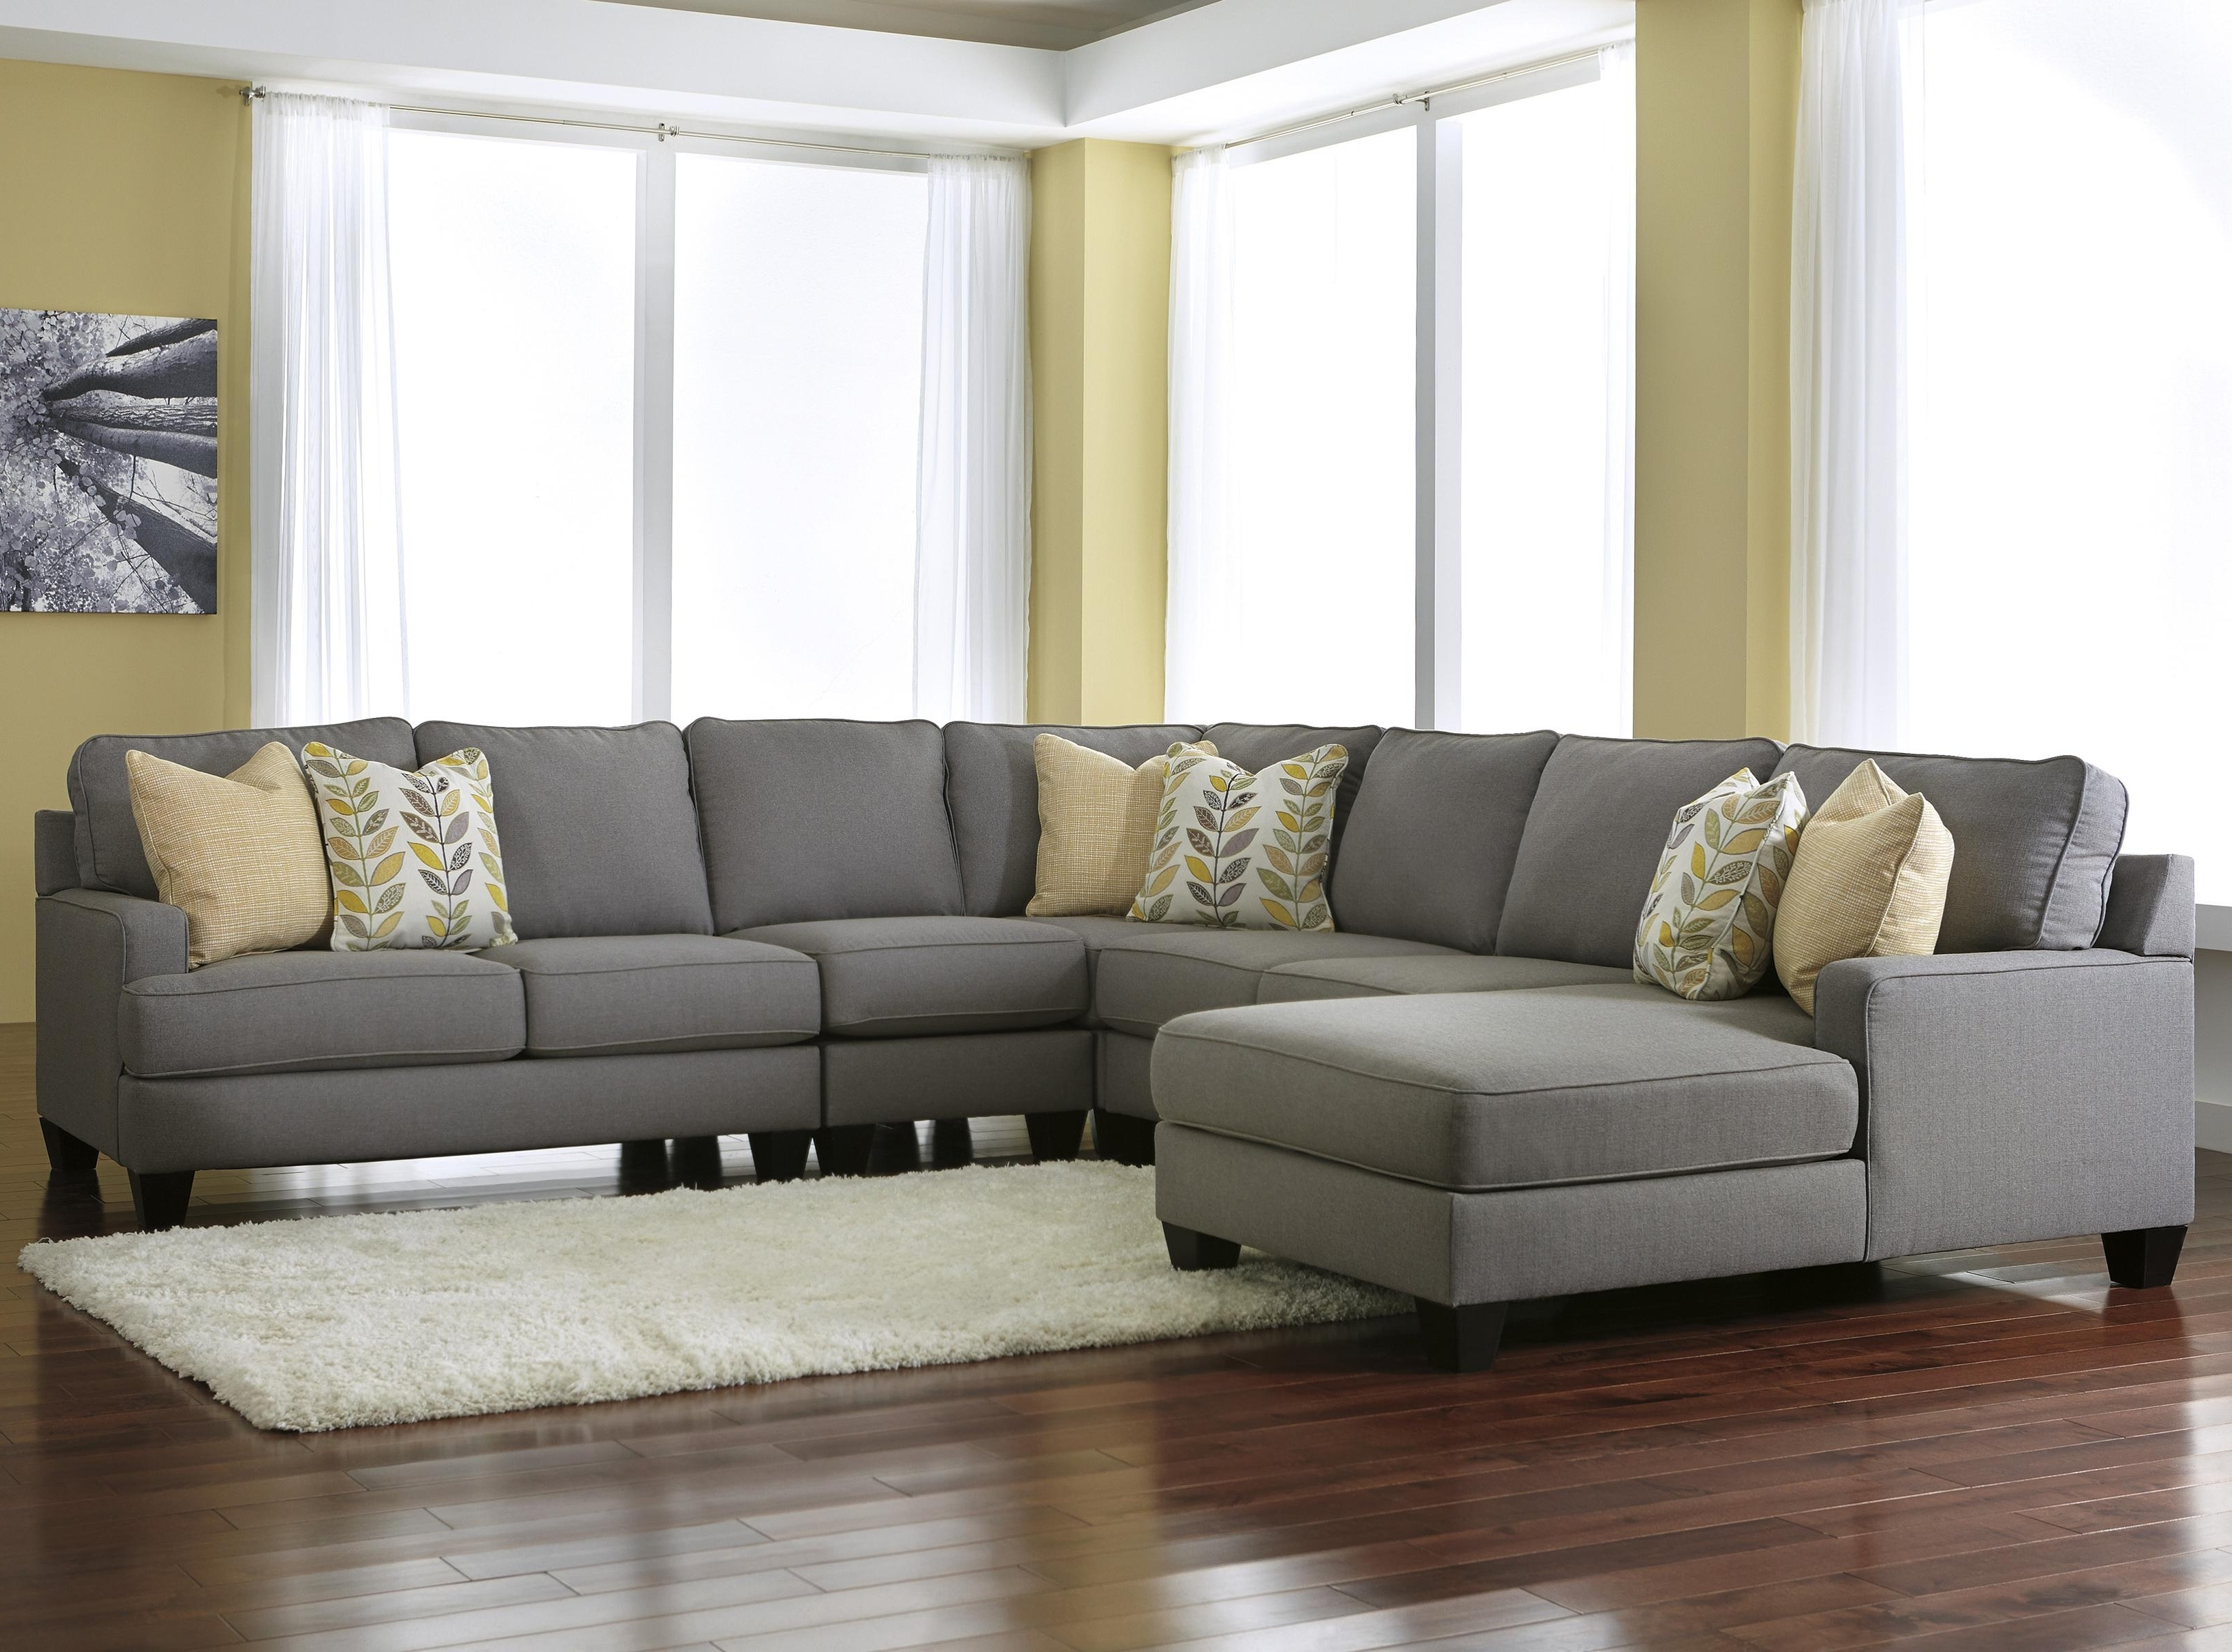 Signature Designashley Chamberly – Alloy Modern 5 Piece Within Newest Johnson City Tn Sectional Sofas (View 7 of 15)